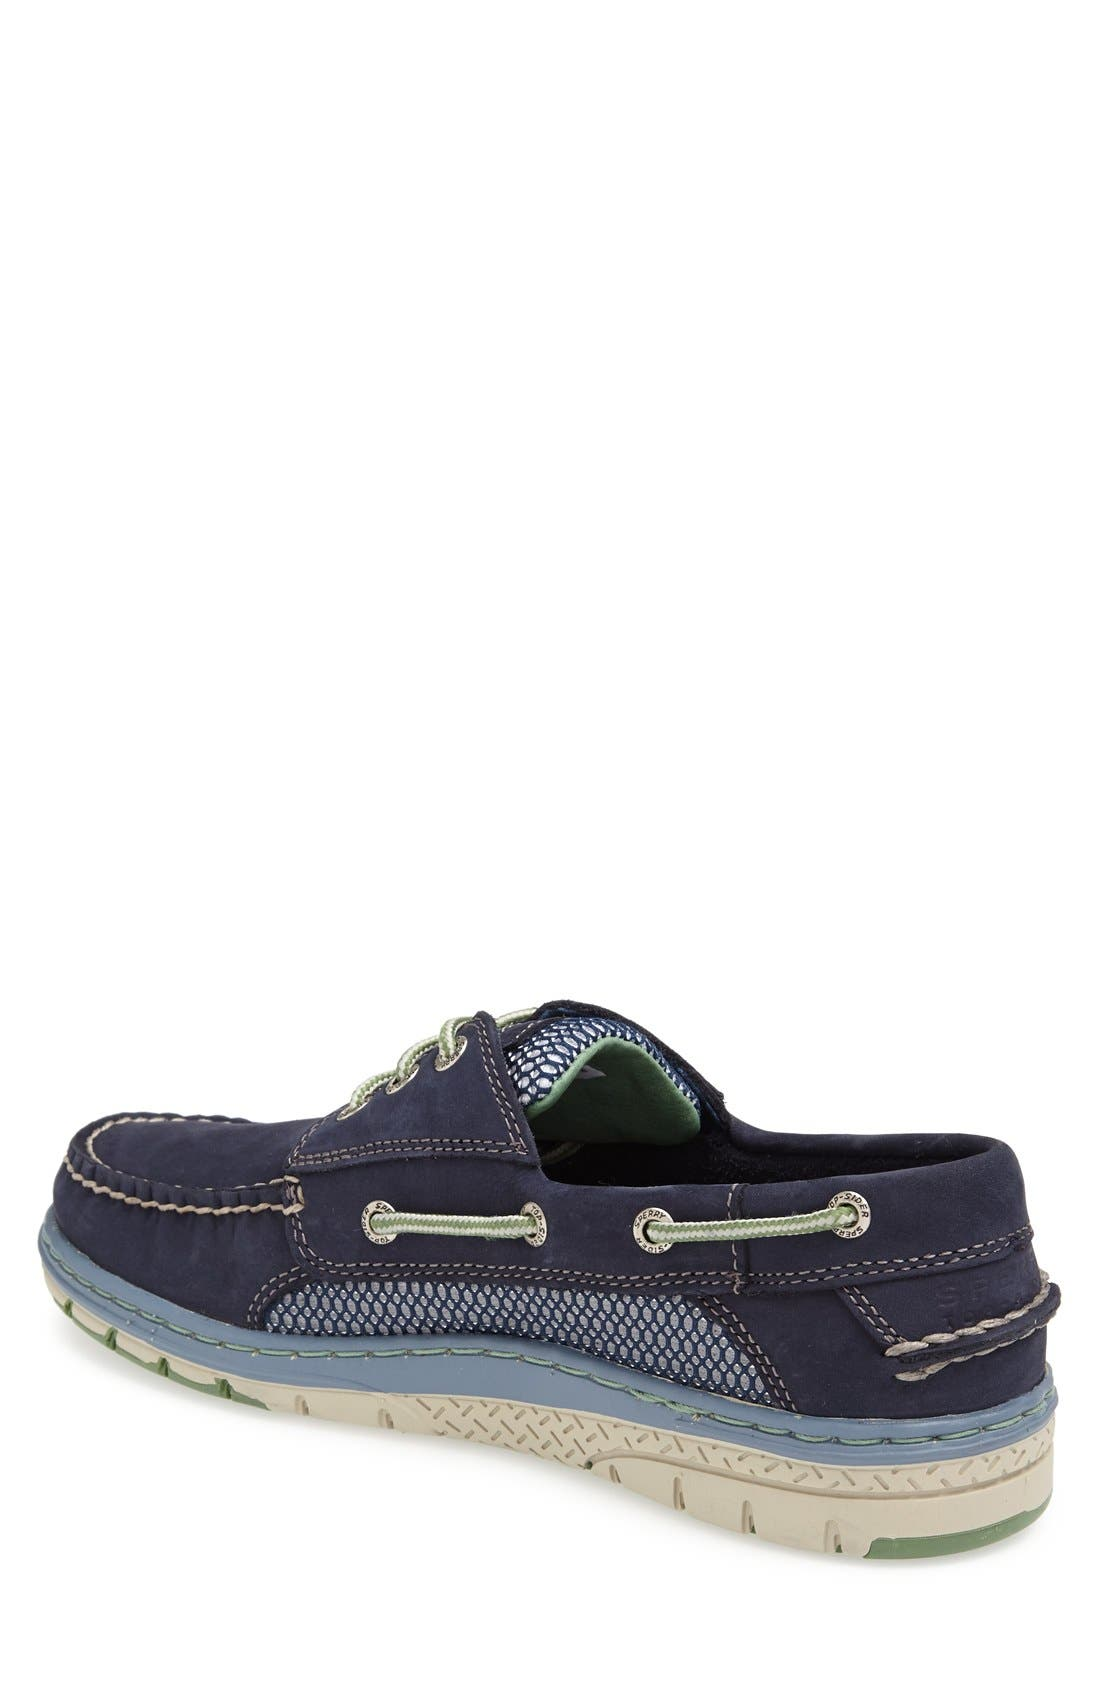 'Billfish Ultralite' Boat Shoe,                             Alternate thumbnail 58, color,